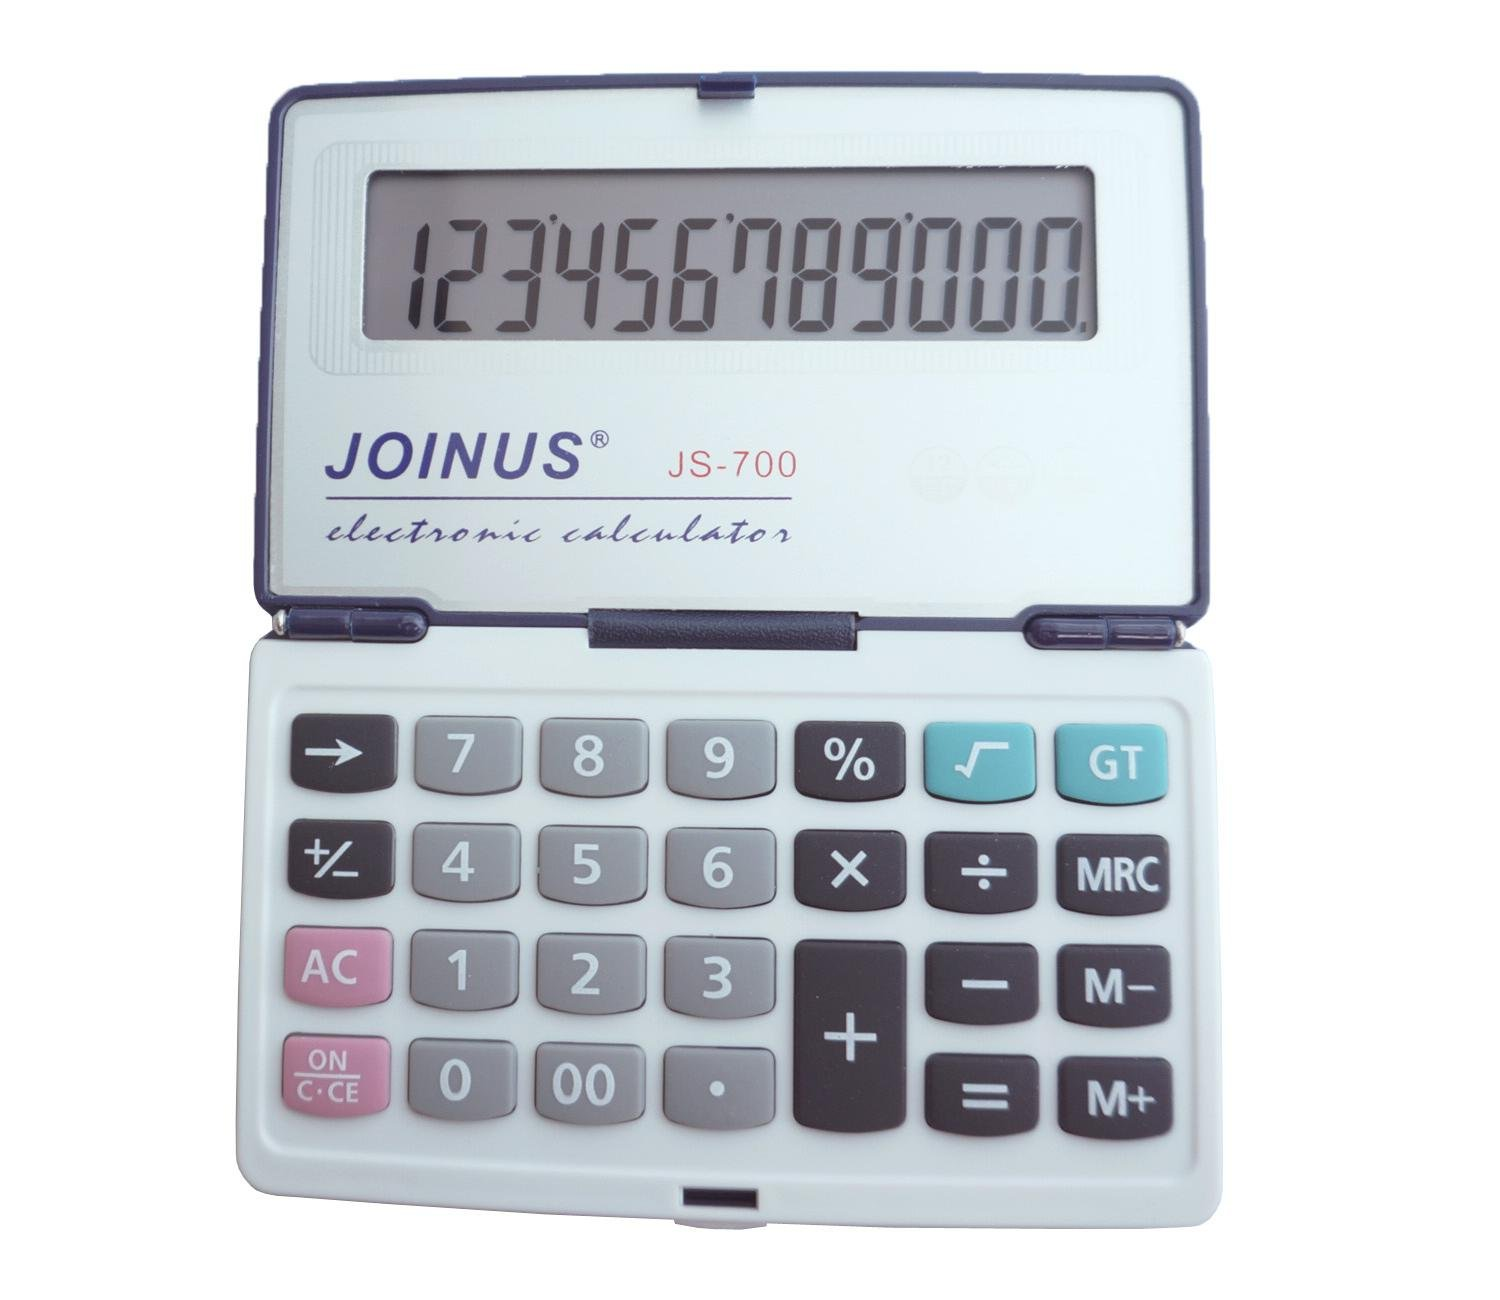 Foldable calculator, Dust-proof and easy to carry, With Large LCD Display,Business Standard Function Calculator for Daily and Basic Office